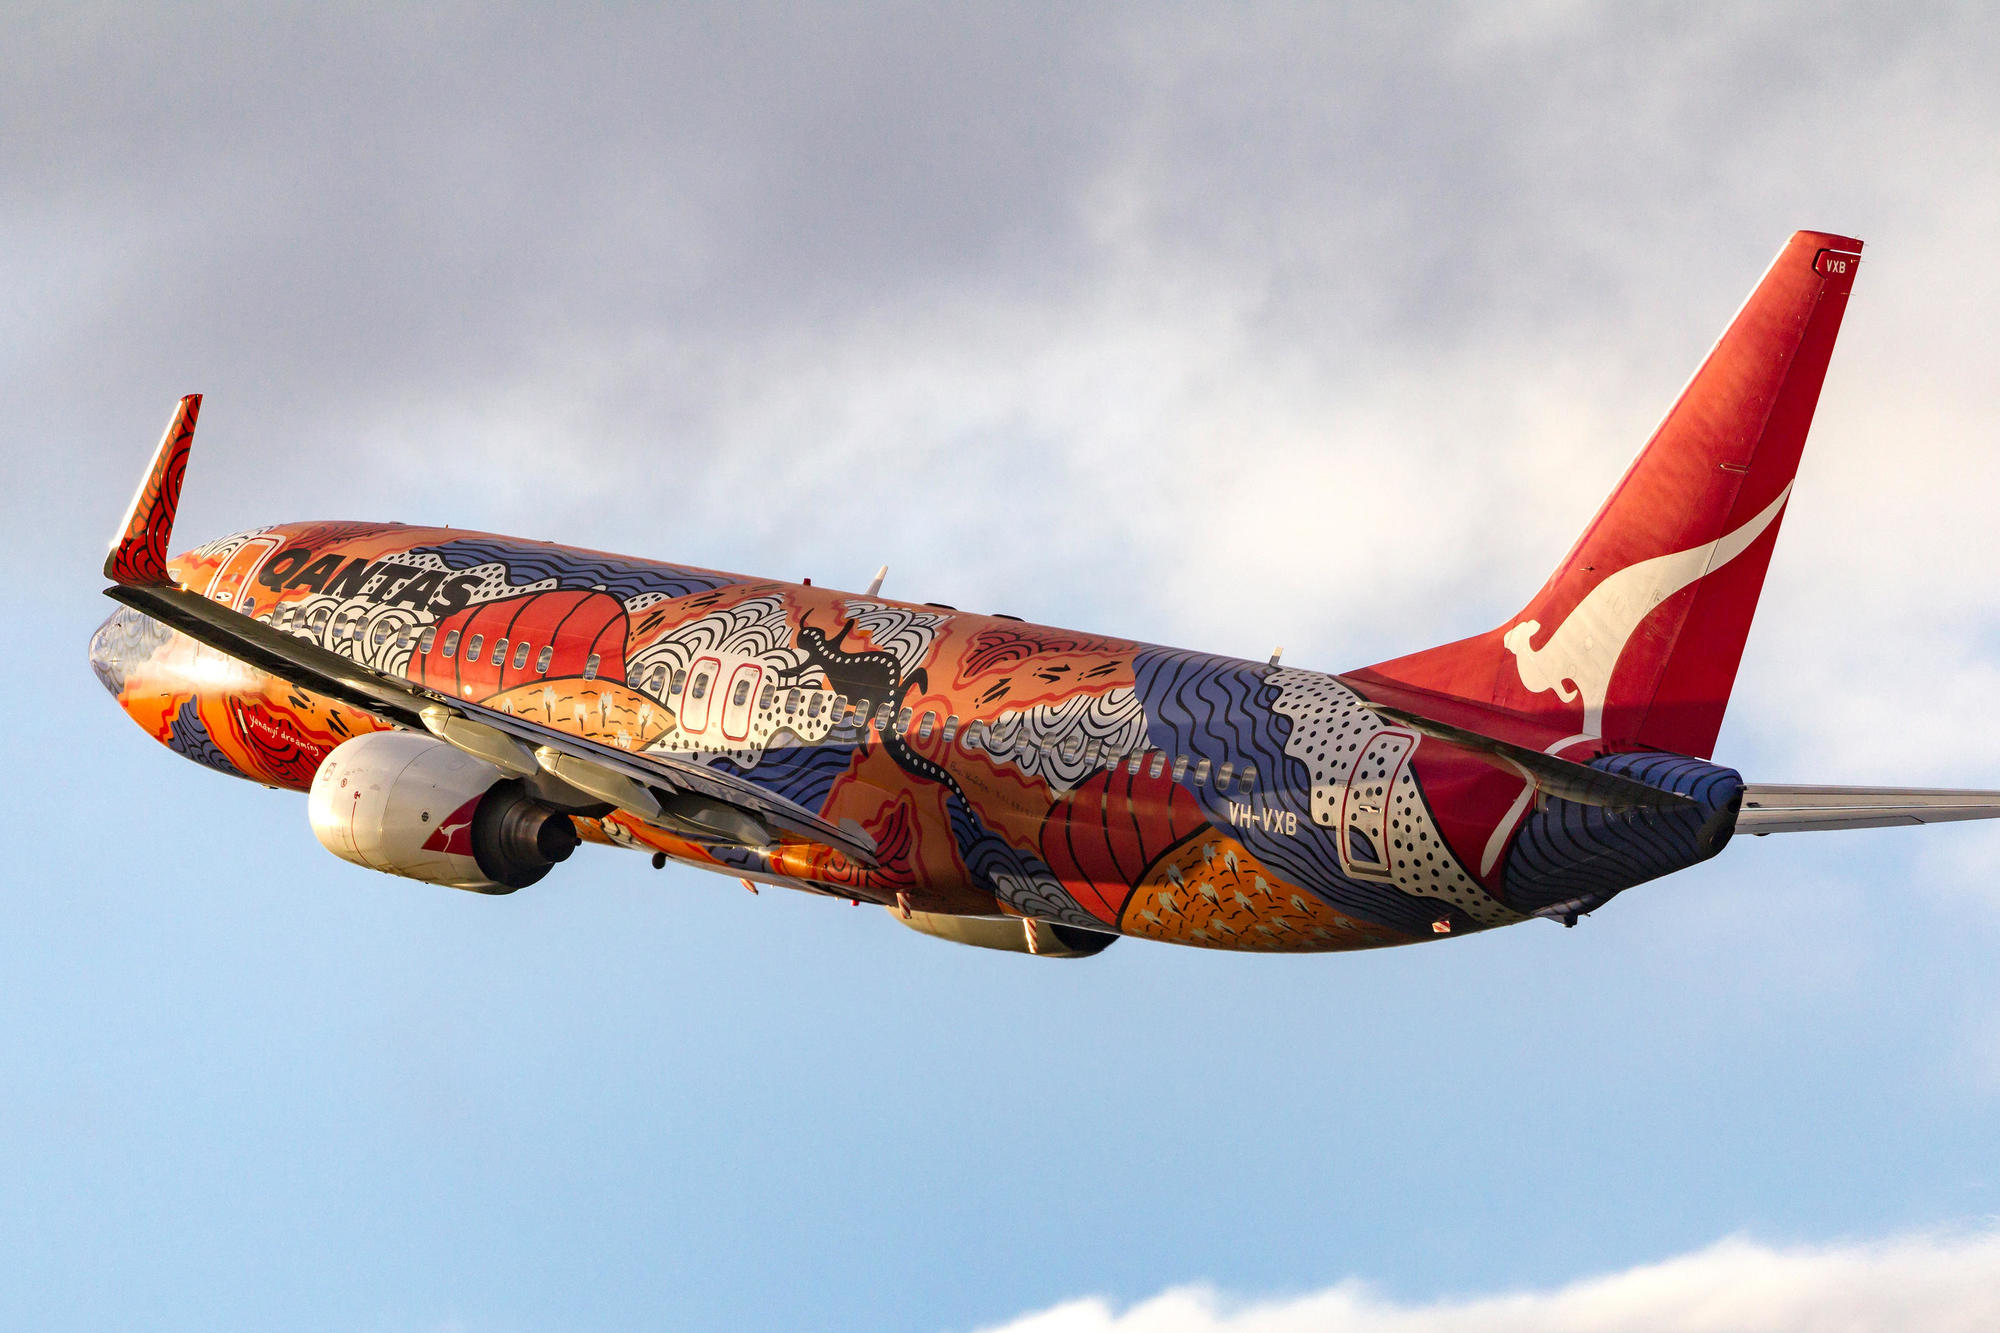 A plane of the Qantas Airline Company, 2011.